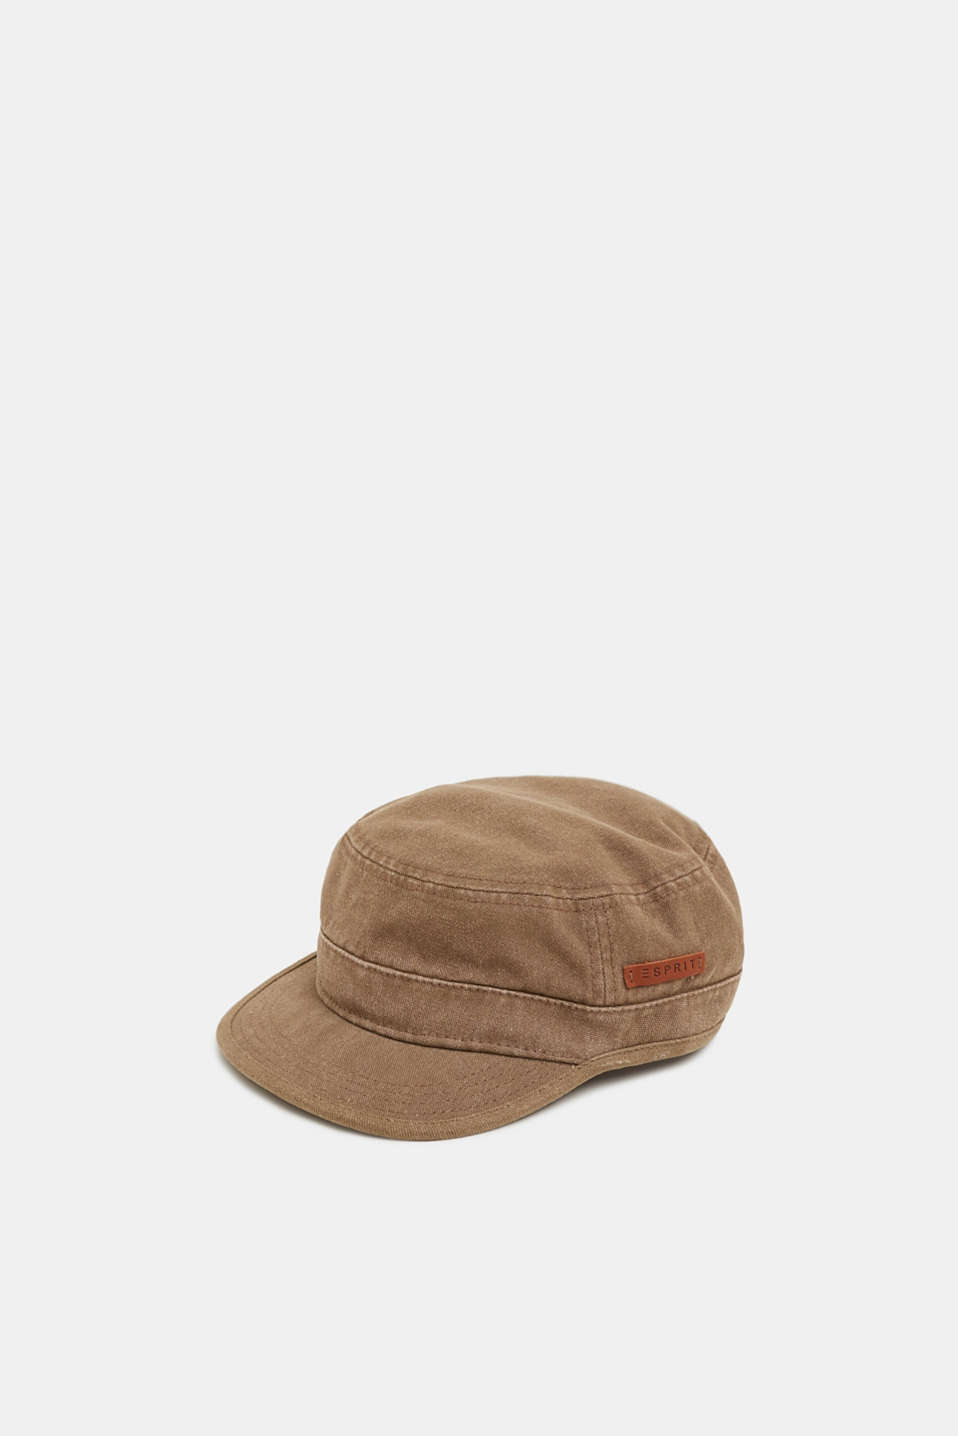 Esprit - Cuban cap in cotton canvas